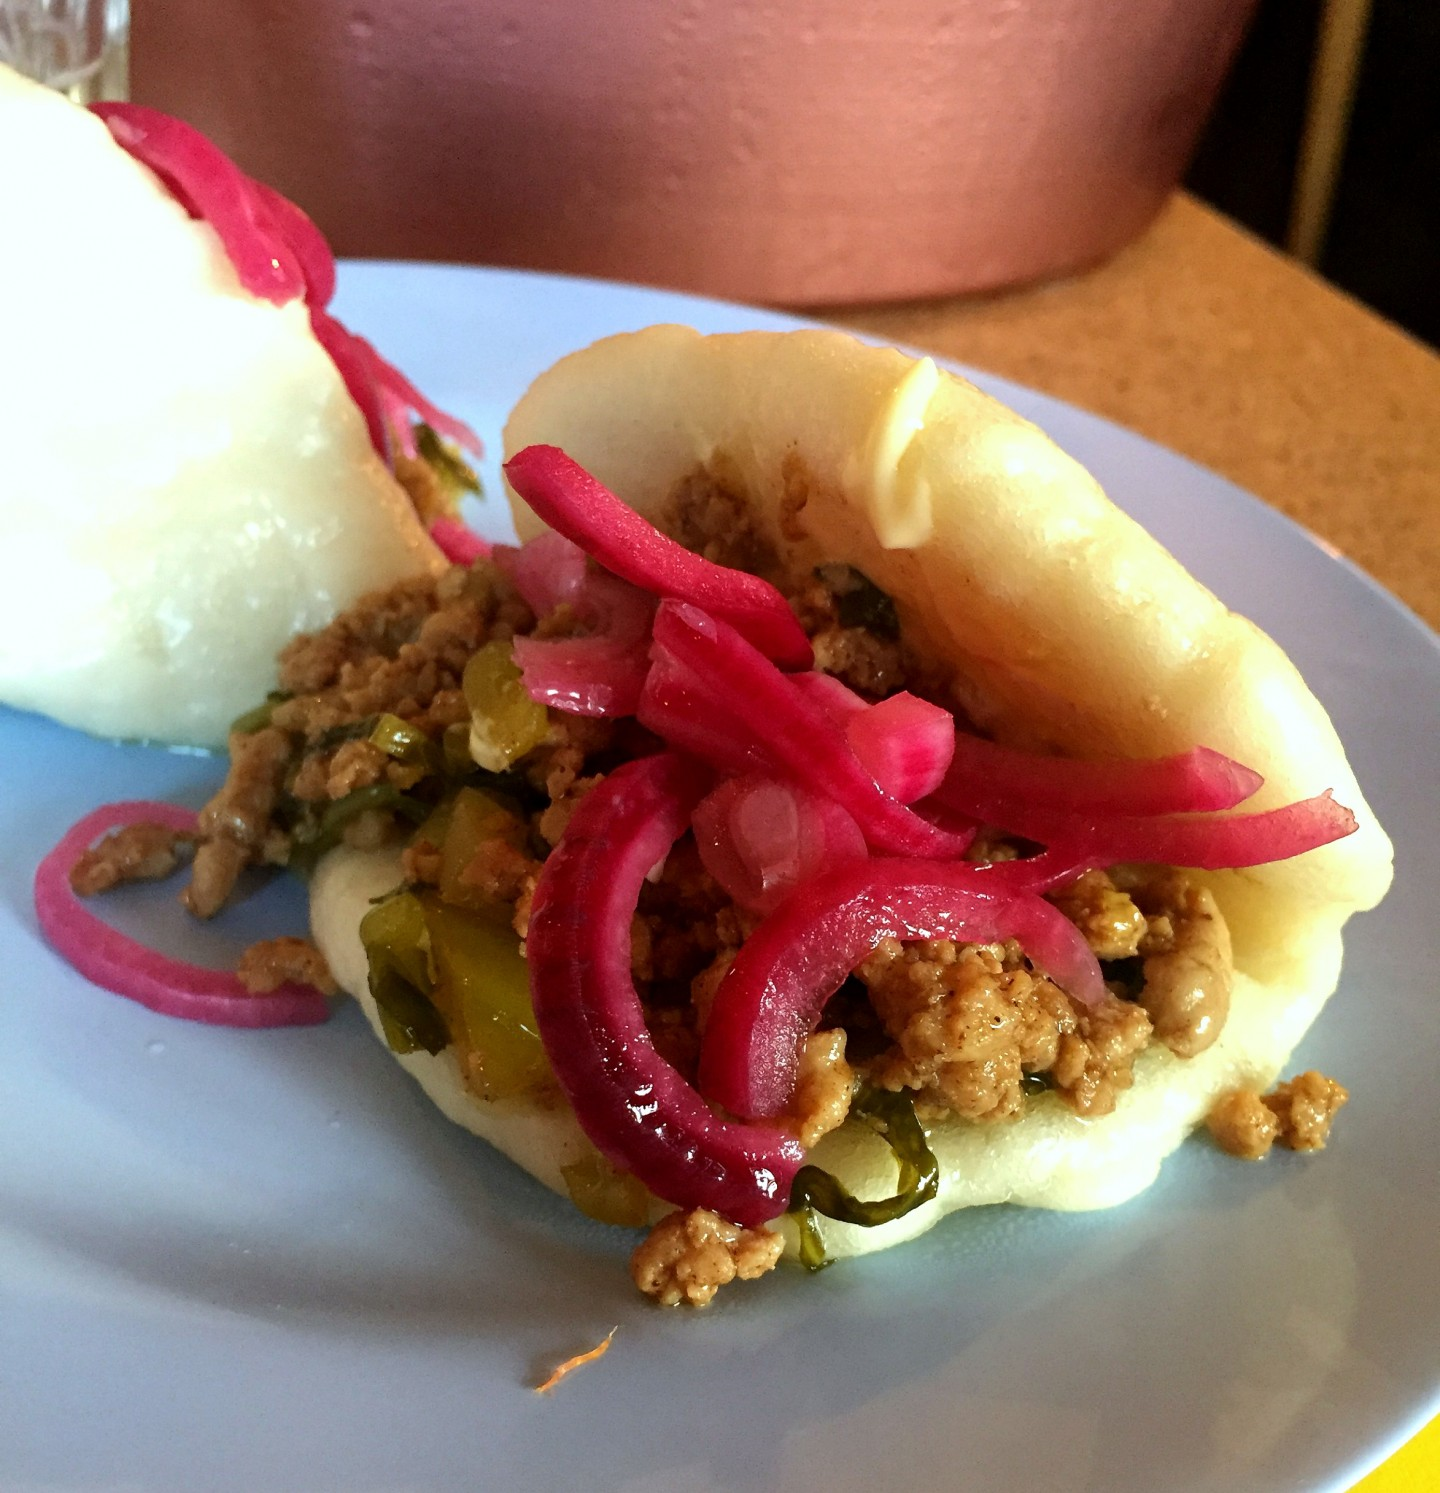 The pork mince bao at Ling Ling's supperclub with kewpie mayo was so delicious!